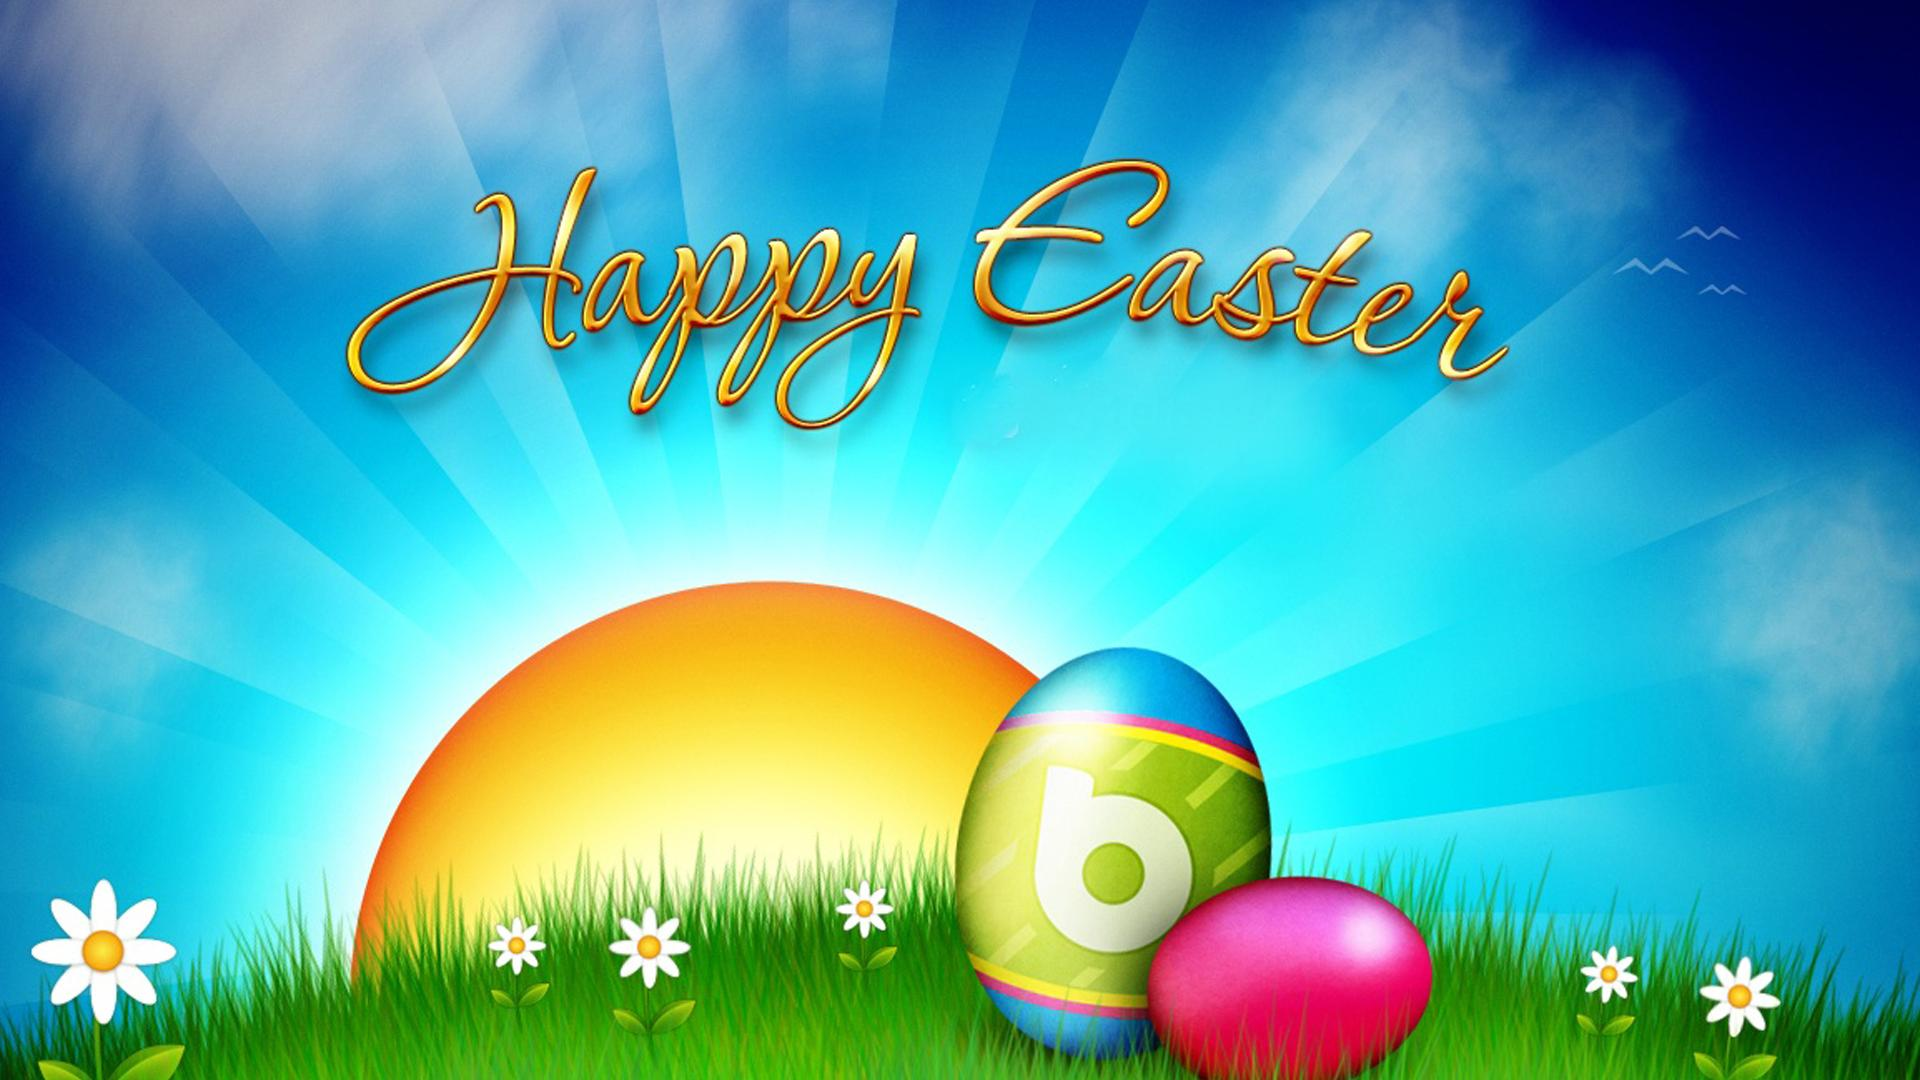 Happy Easter Day Background Hd Wallpaper Wide Screen Wallpaper